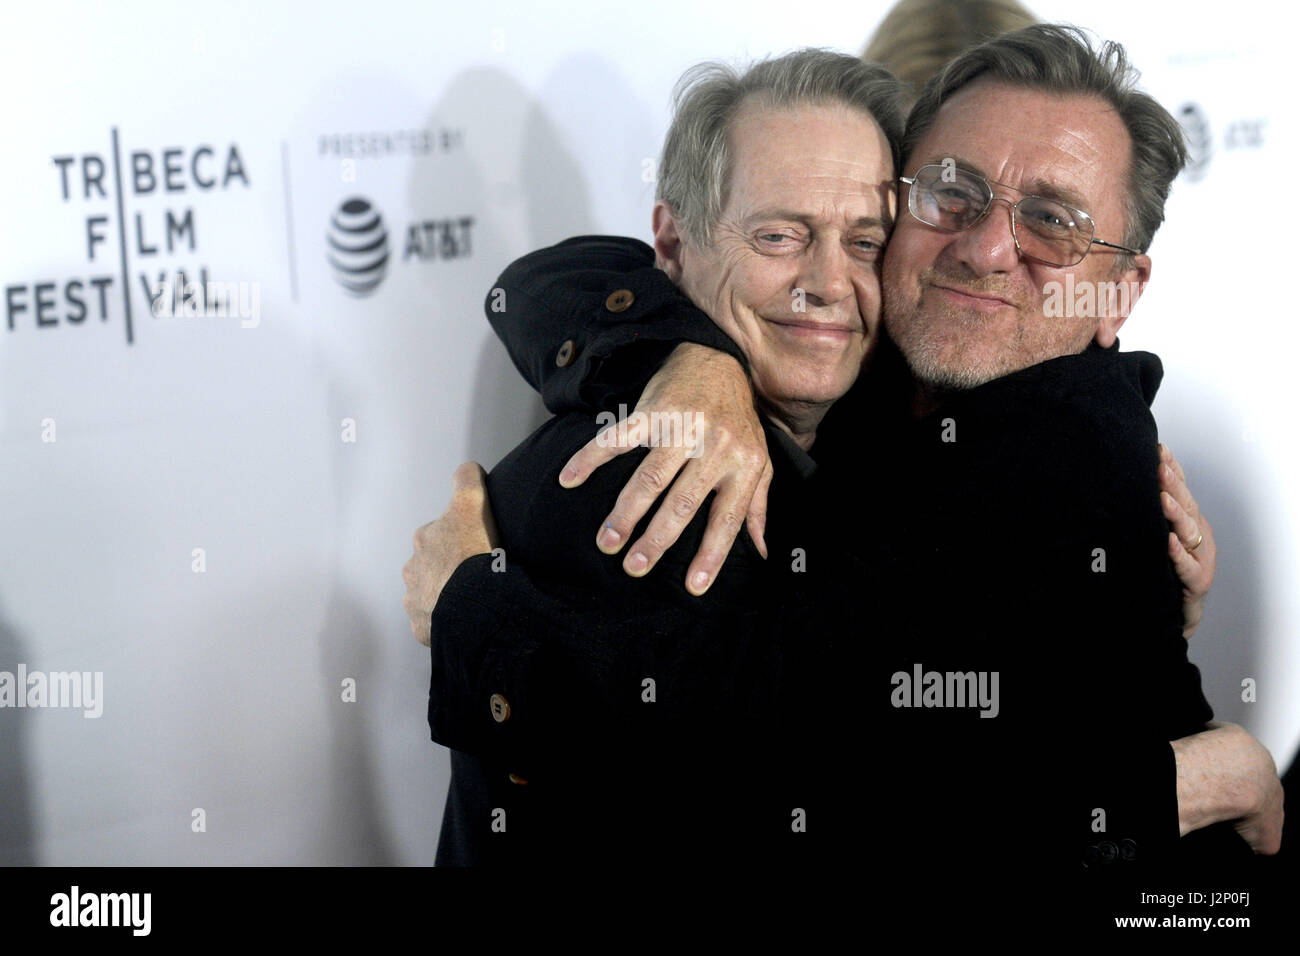 New York City. 28th Apr, 2017. Steve Buscemi and Tim Roth attend the 'Reservoir Dogs' 25th Anniversary Screening Stock Foto